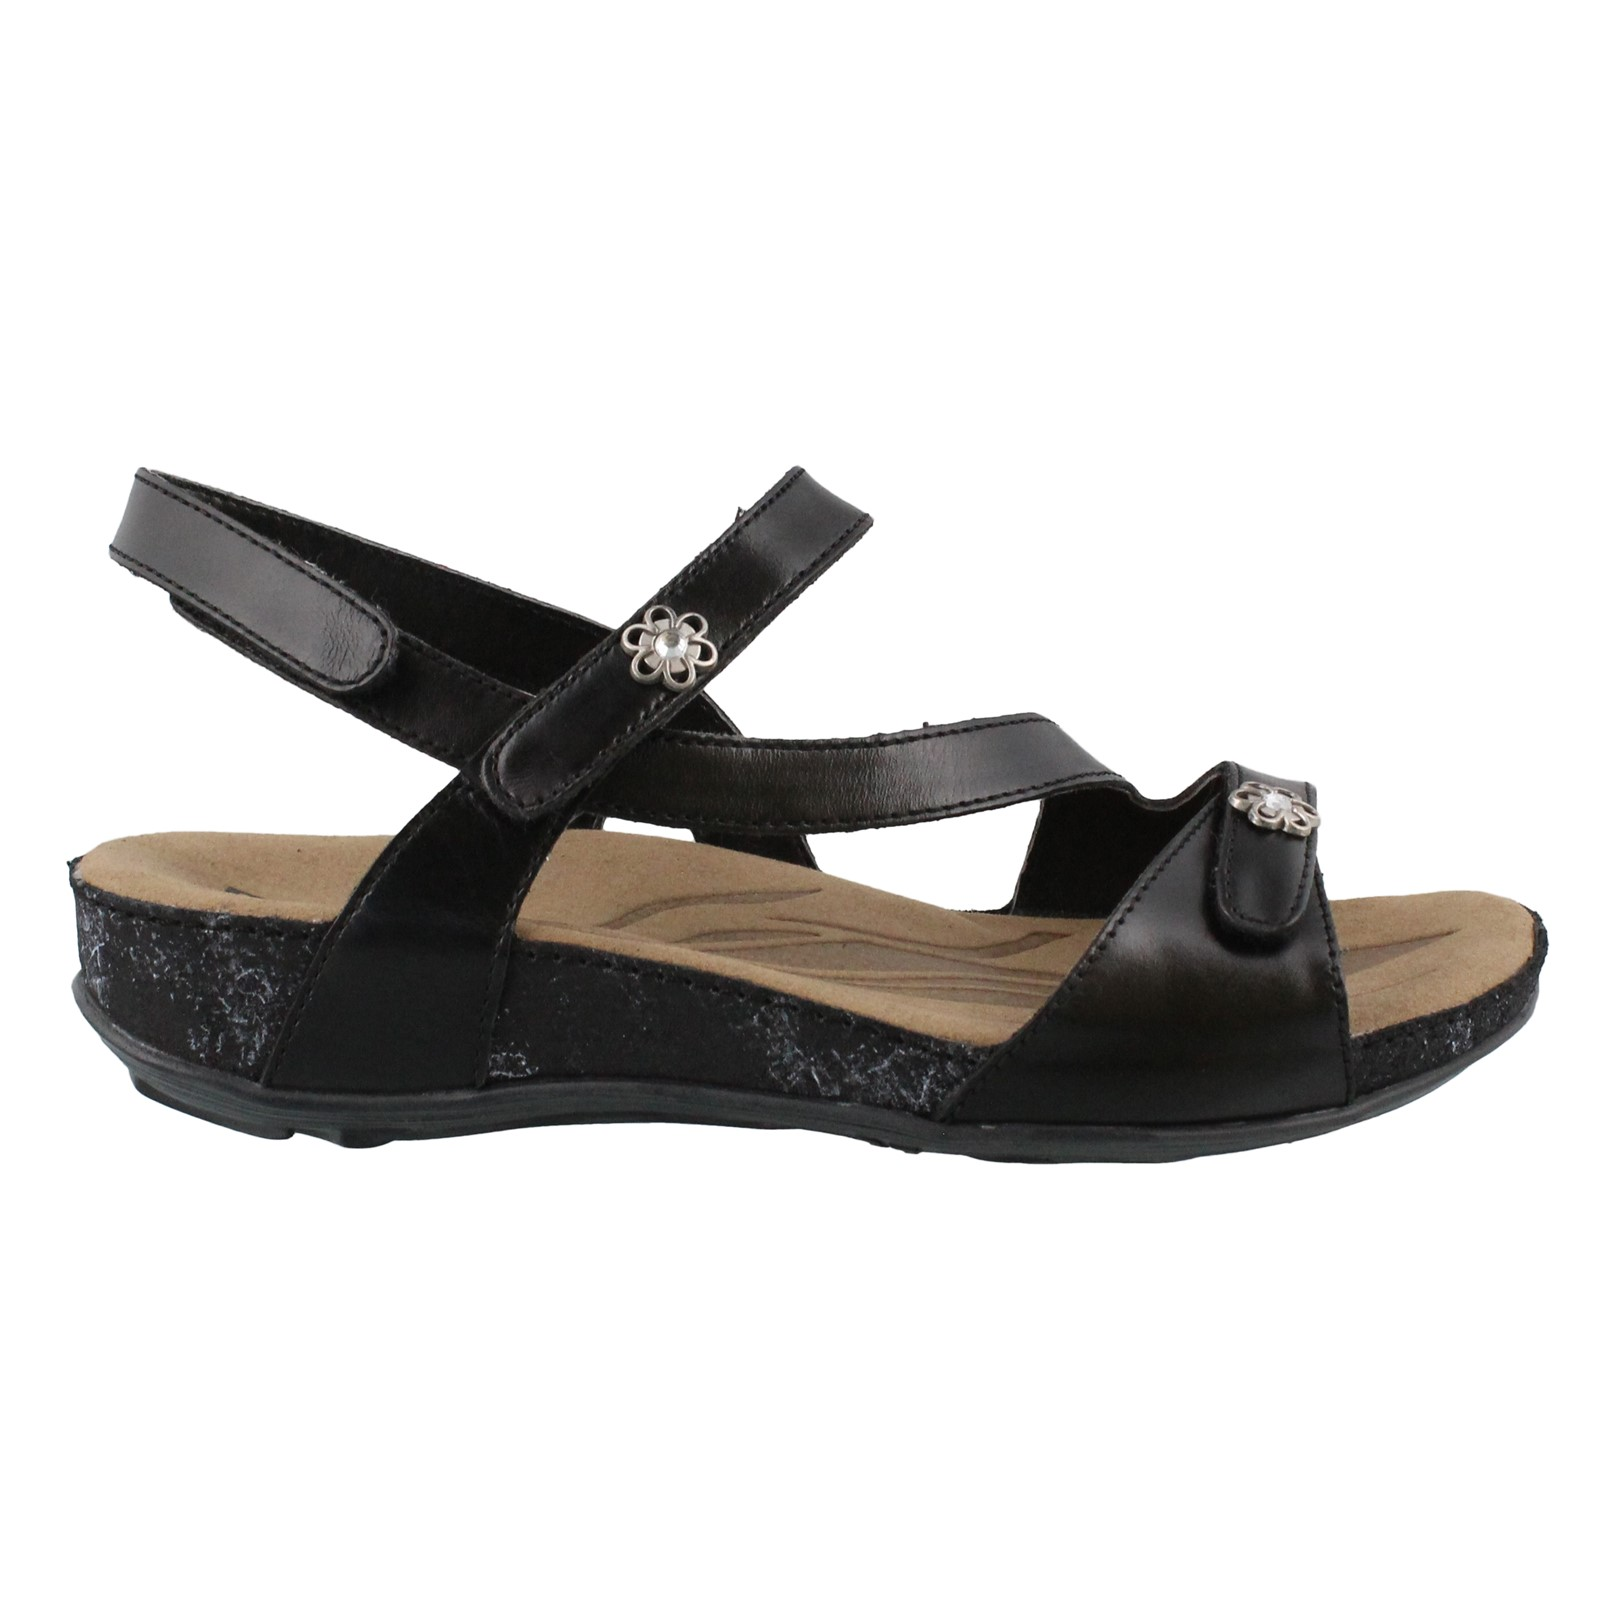 Women's Romika, Fidschi 54 Sandals